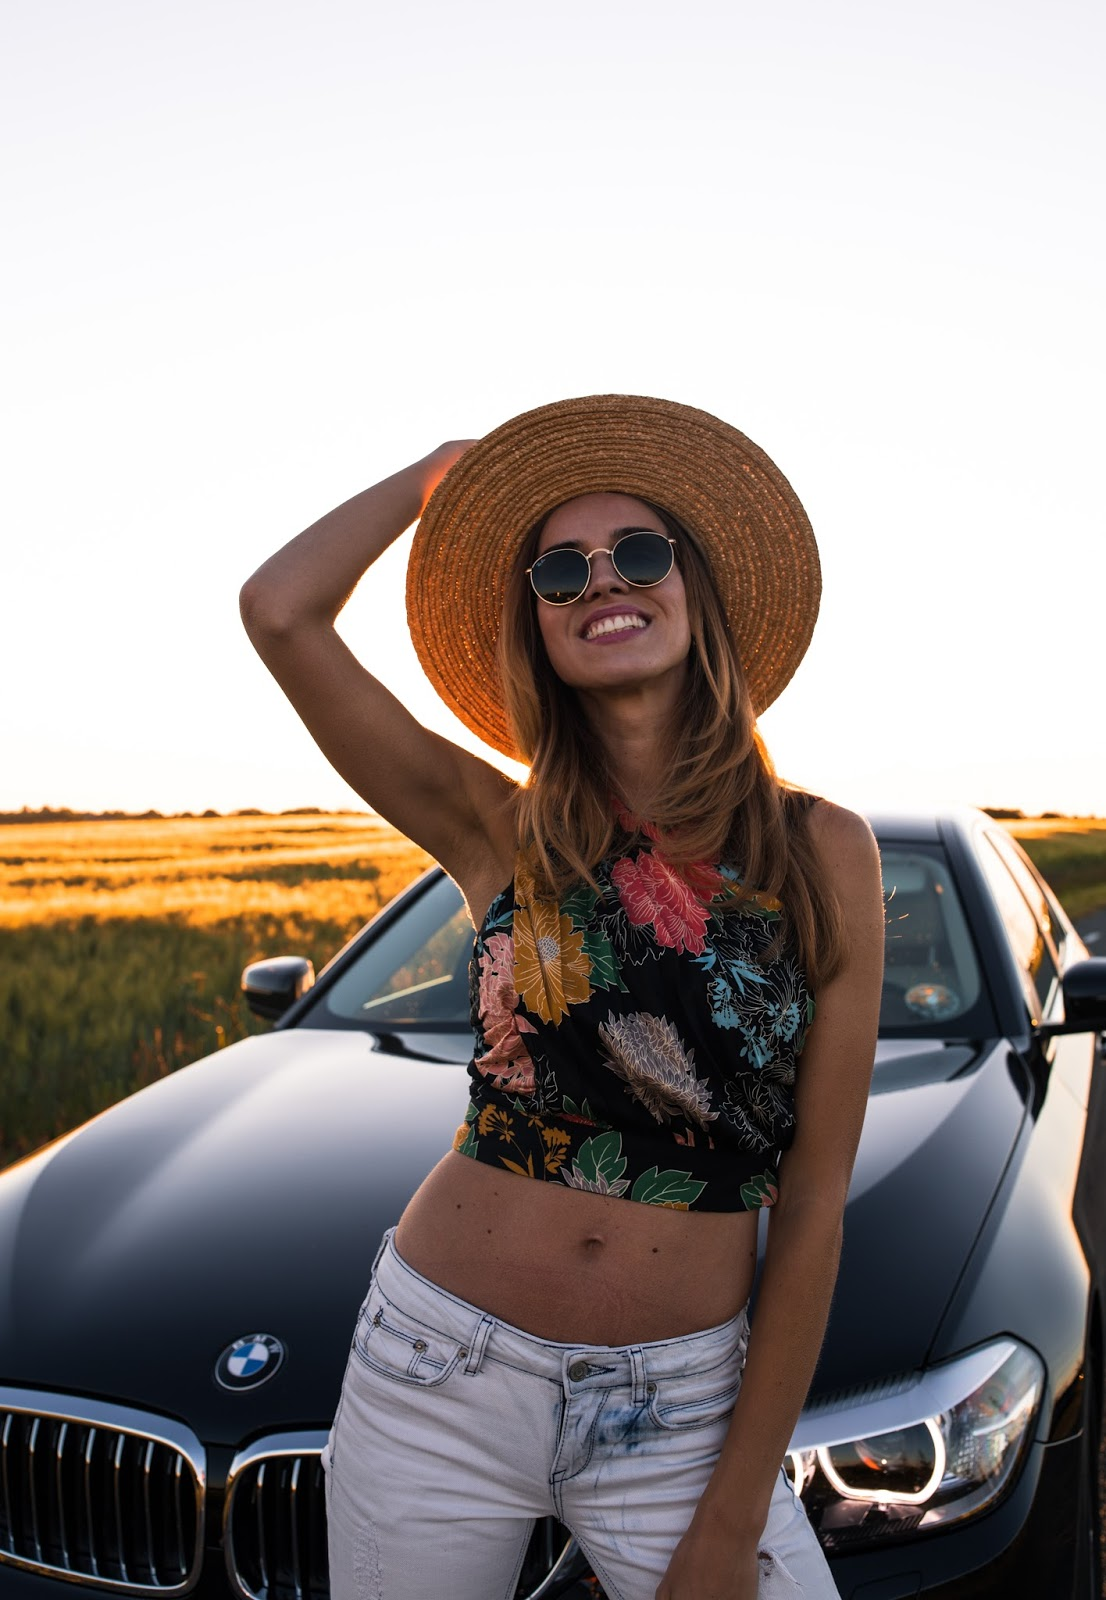 summer girl bmw car sunset roadtrip